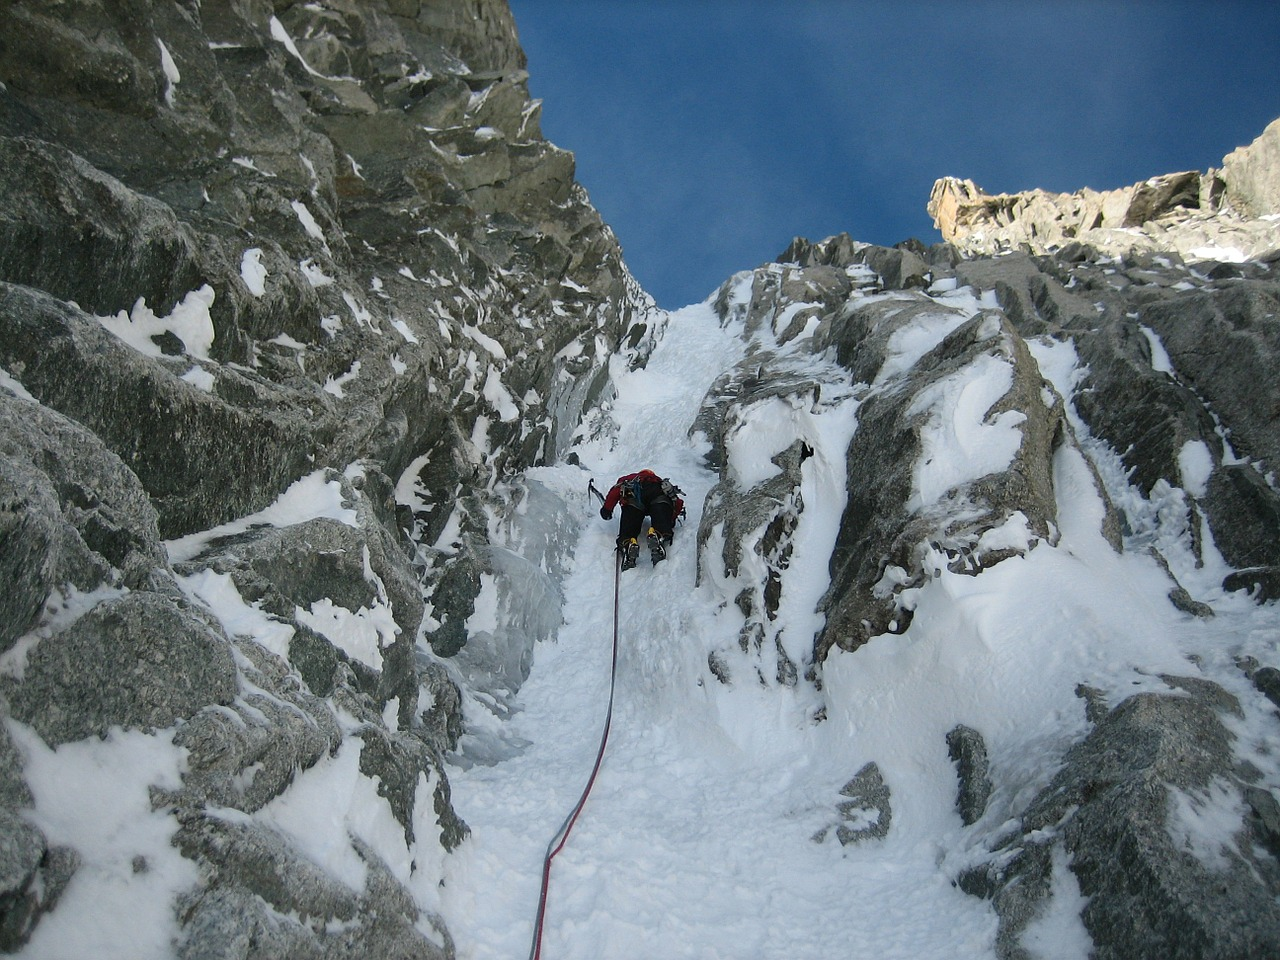 icy channel,ice climbing,mont blanc du tacul,chamonix,alpine,snow,mountains,high mountains,eiscouloir,free pictures, free photos, free images, royalty free, free illustrations, public domain